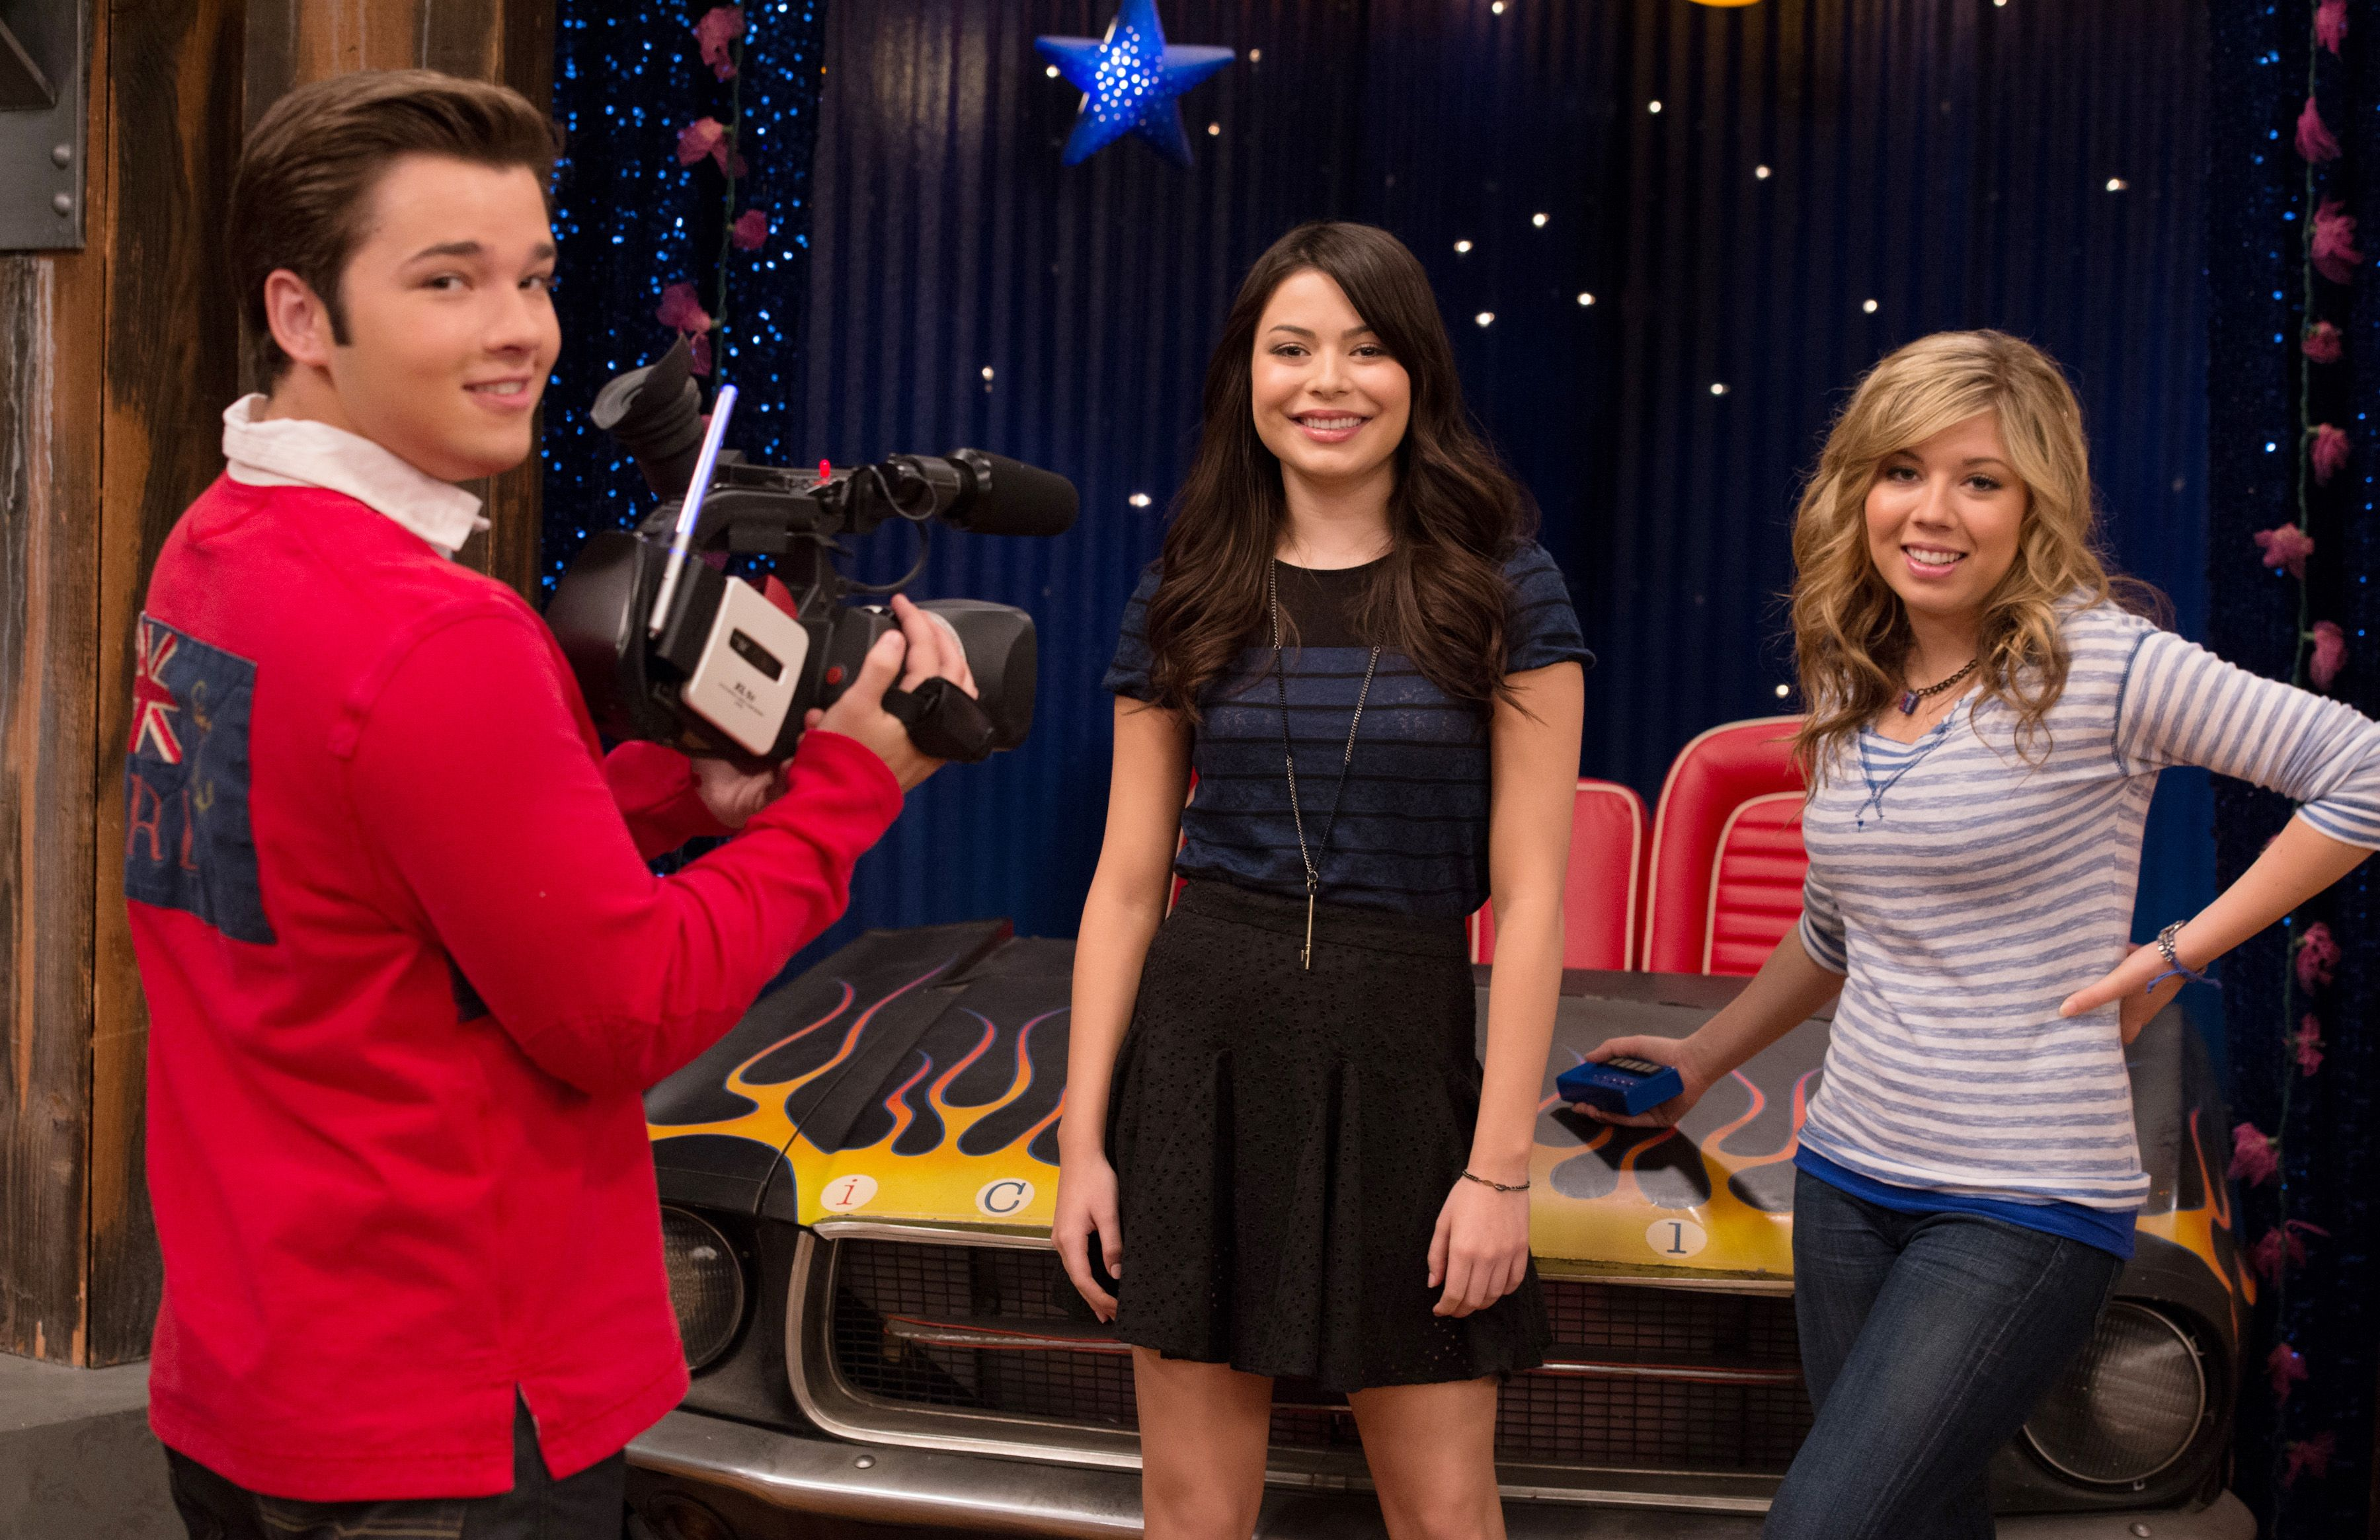 20+ Best iCarly Memes That Will Make You Want to Rewatch the Show Again